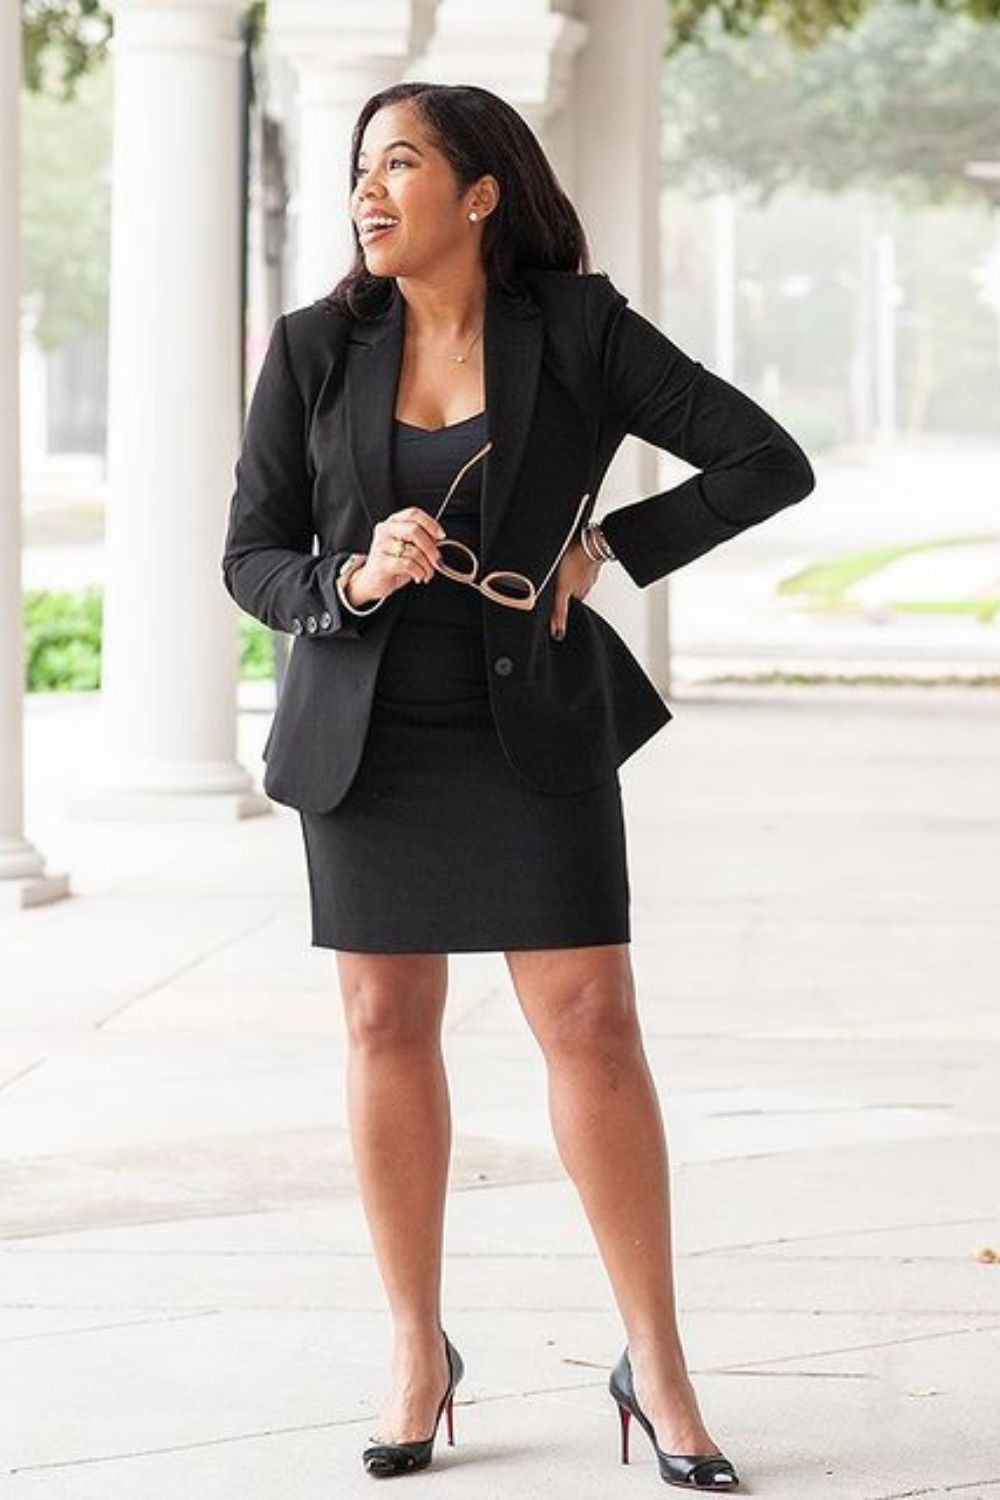 Classic Black Blazer Outfit Courhousecouture In 2021 Lawyer Fashion Professional Outfits Professional Outfits Women [ 1500 x 1000 Pixel ]